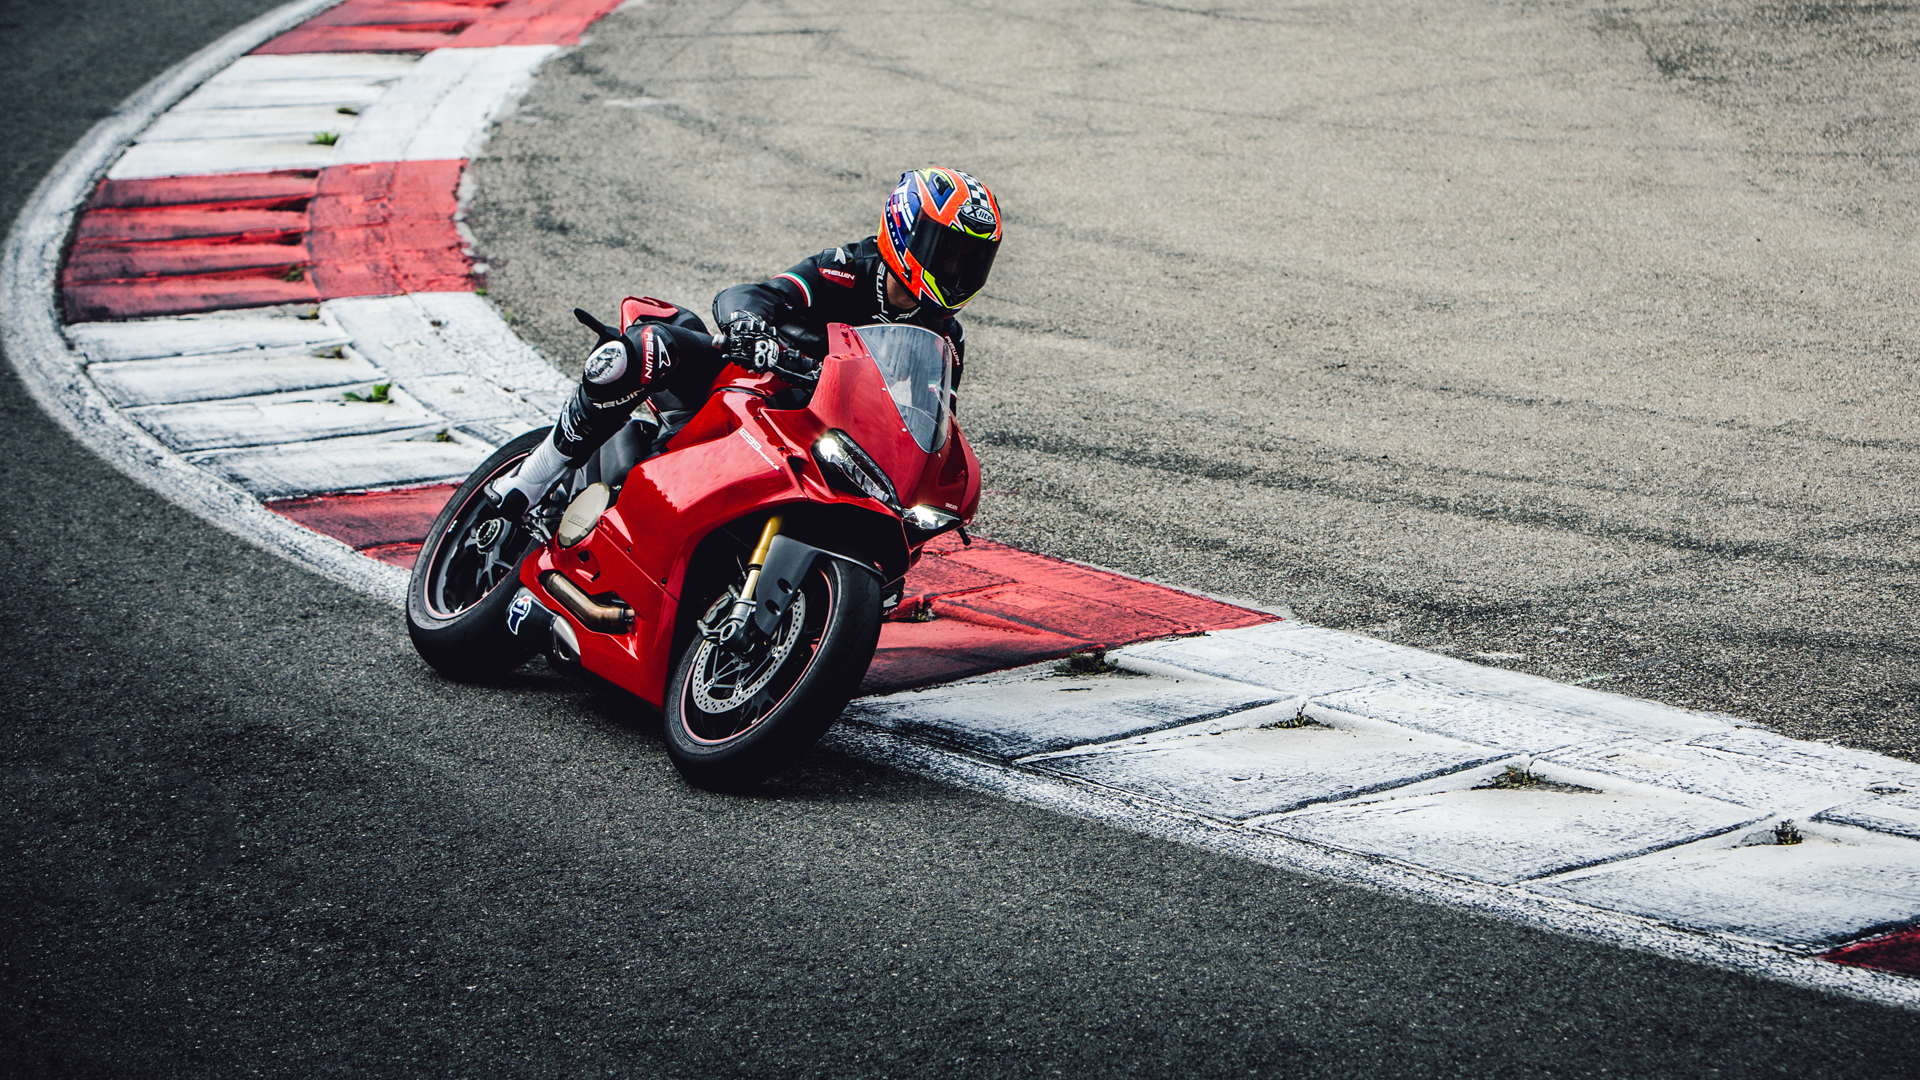 Improve your ride performance on track